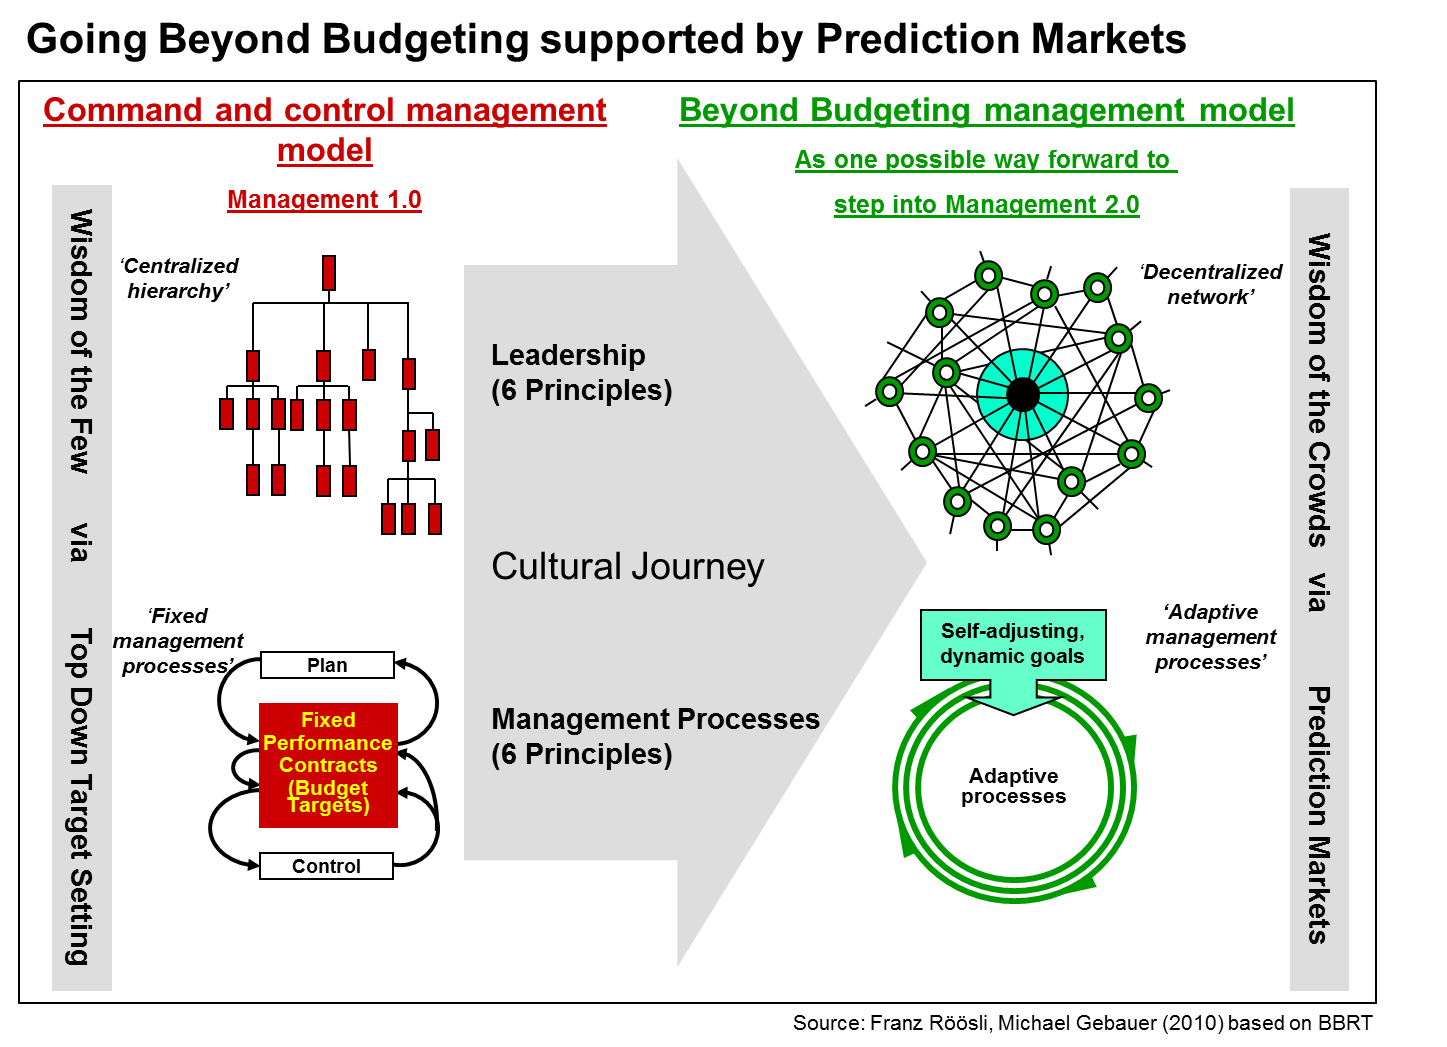 beyond budgeting What is beyond budgeting bjarte bogsnes vice president - performance management development chairman - beyond budgeting round table europe1.